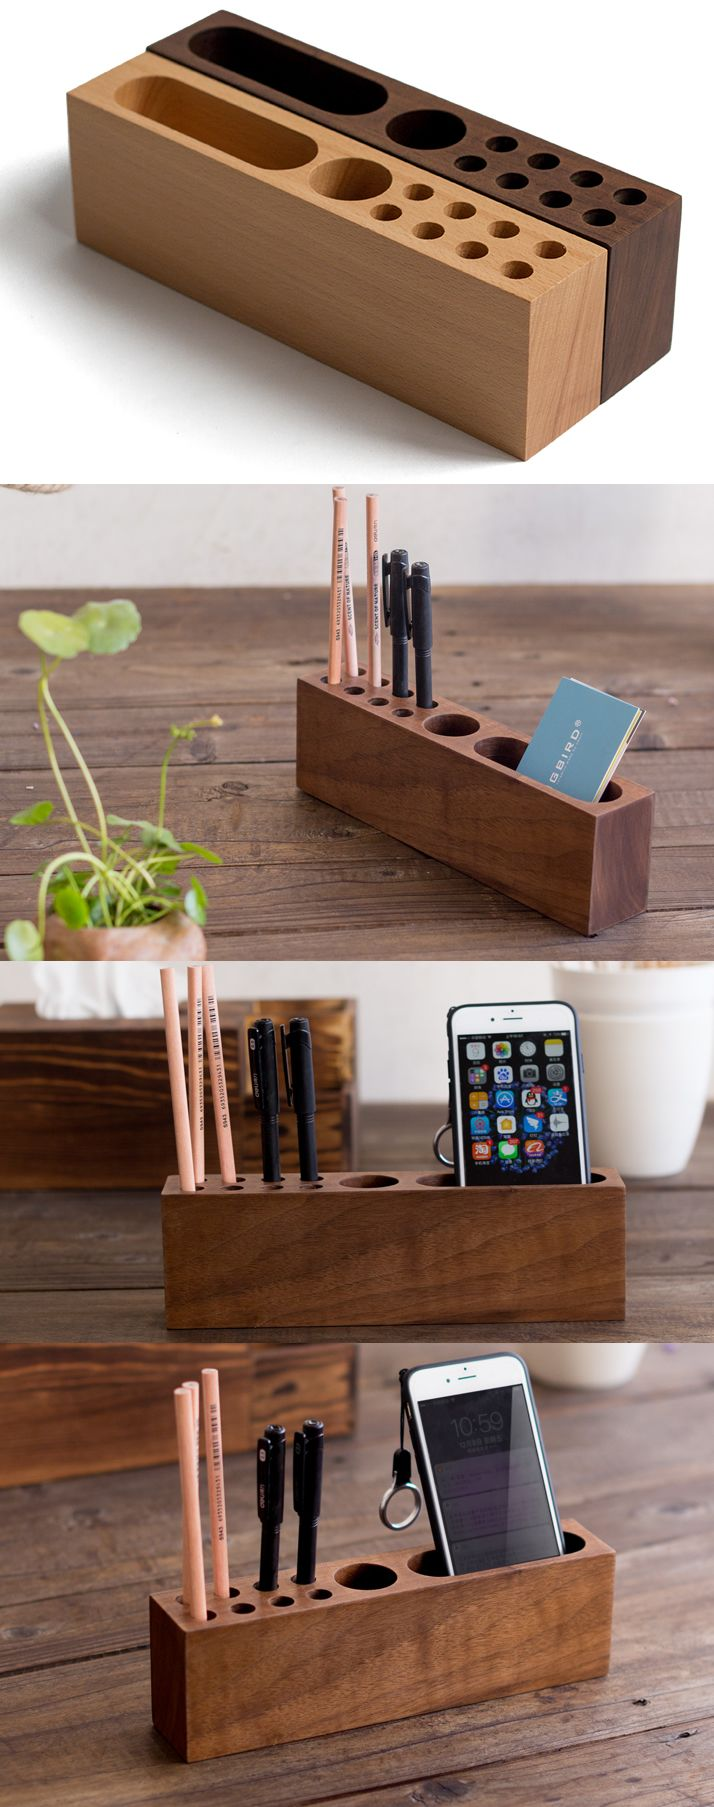 Bamboo Wooden Iphone Smart Phone Stand Holder Dock Pen Pencil Holder Stand Business Card Desk Organization Diy Wooden Desk Organizer Desk Organization Office